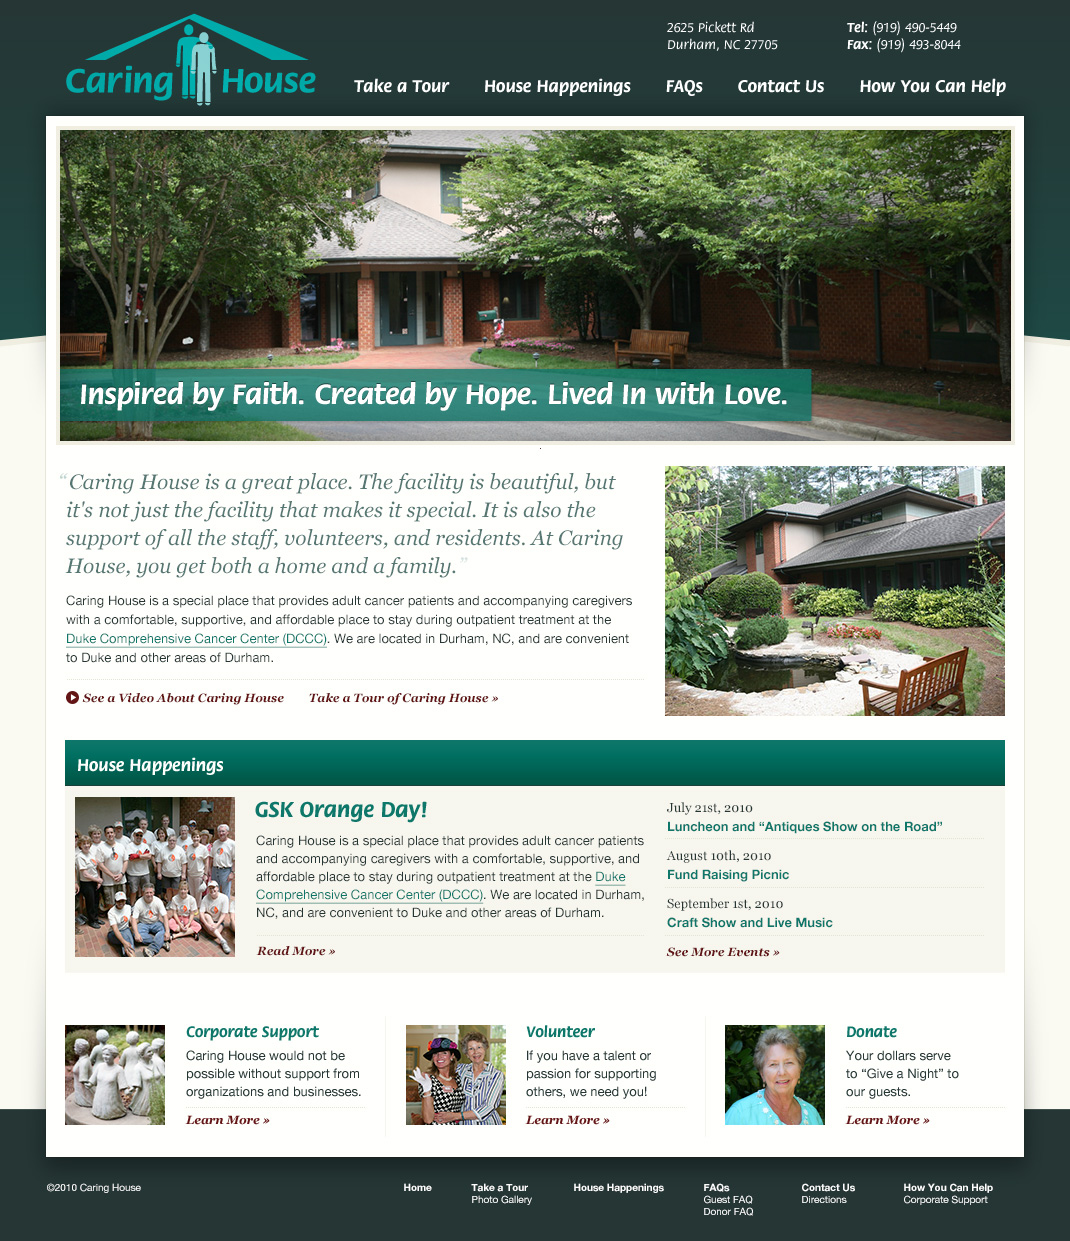 Original Caring House website